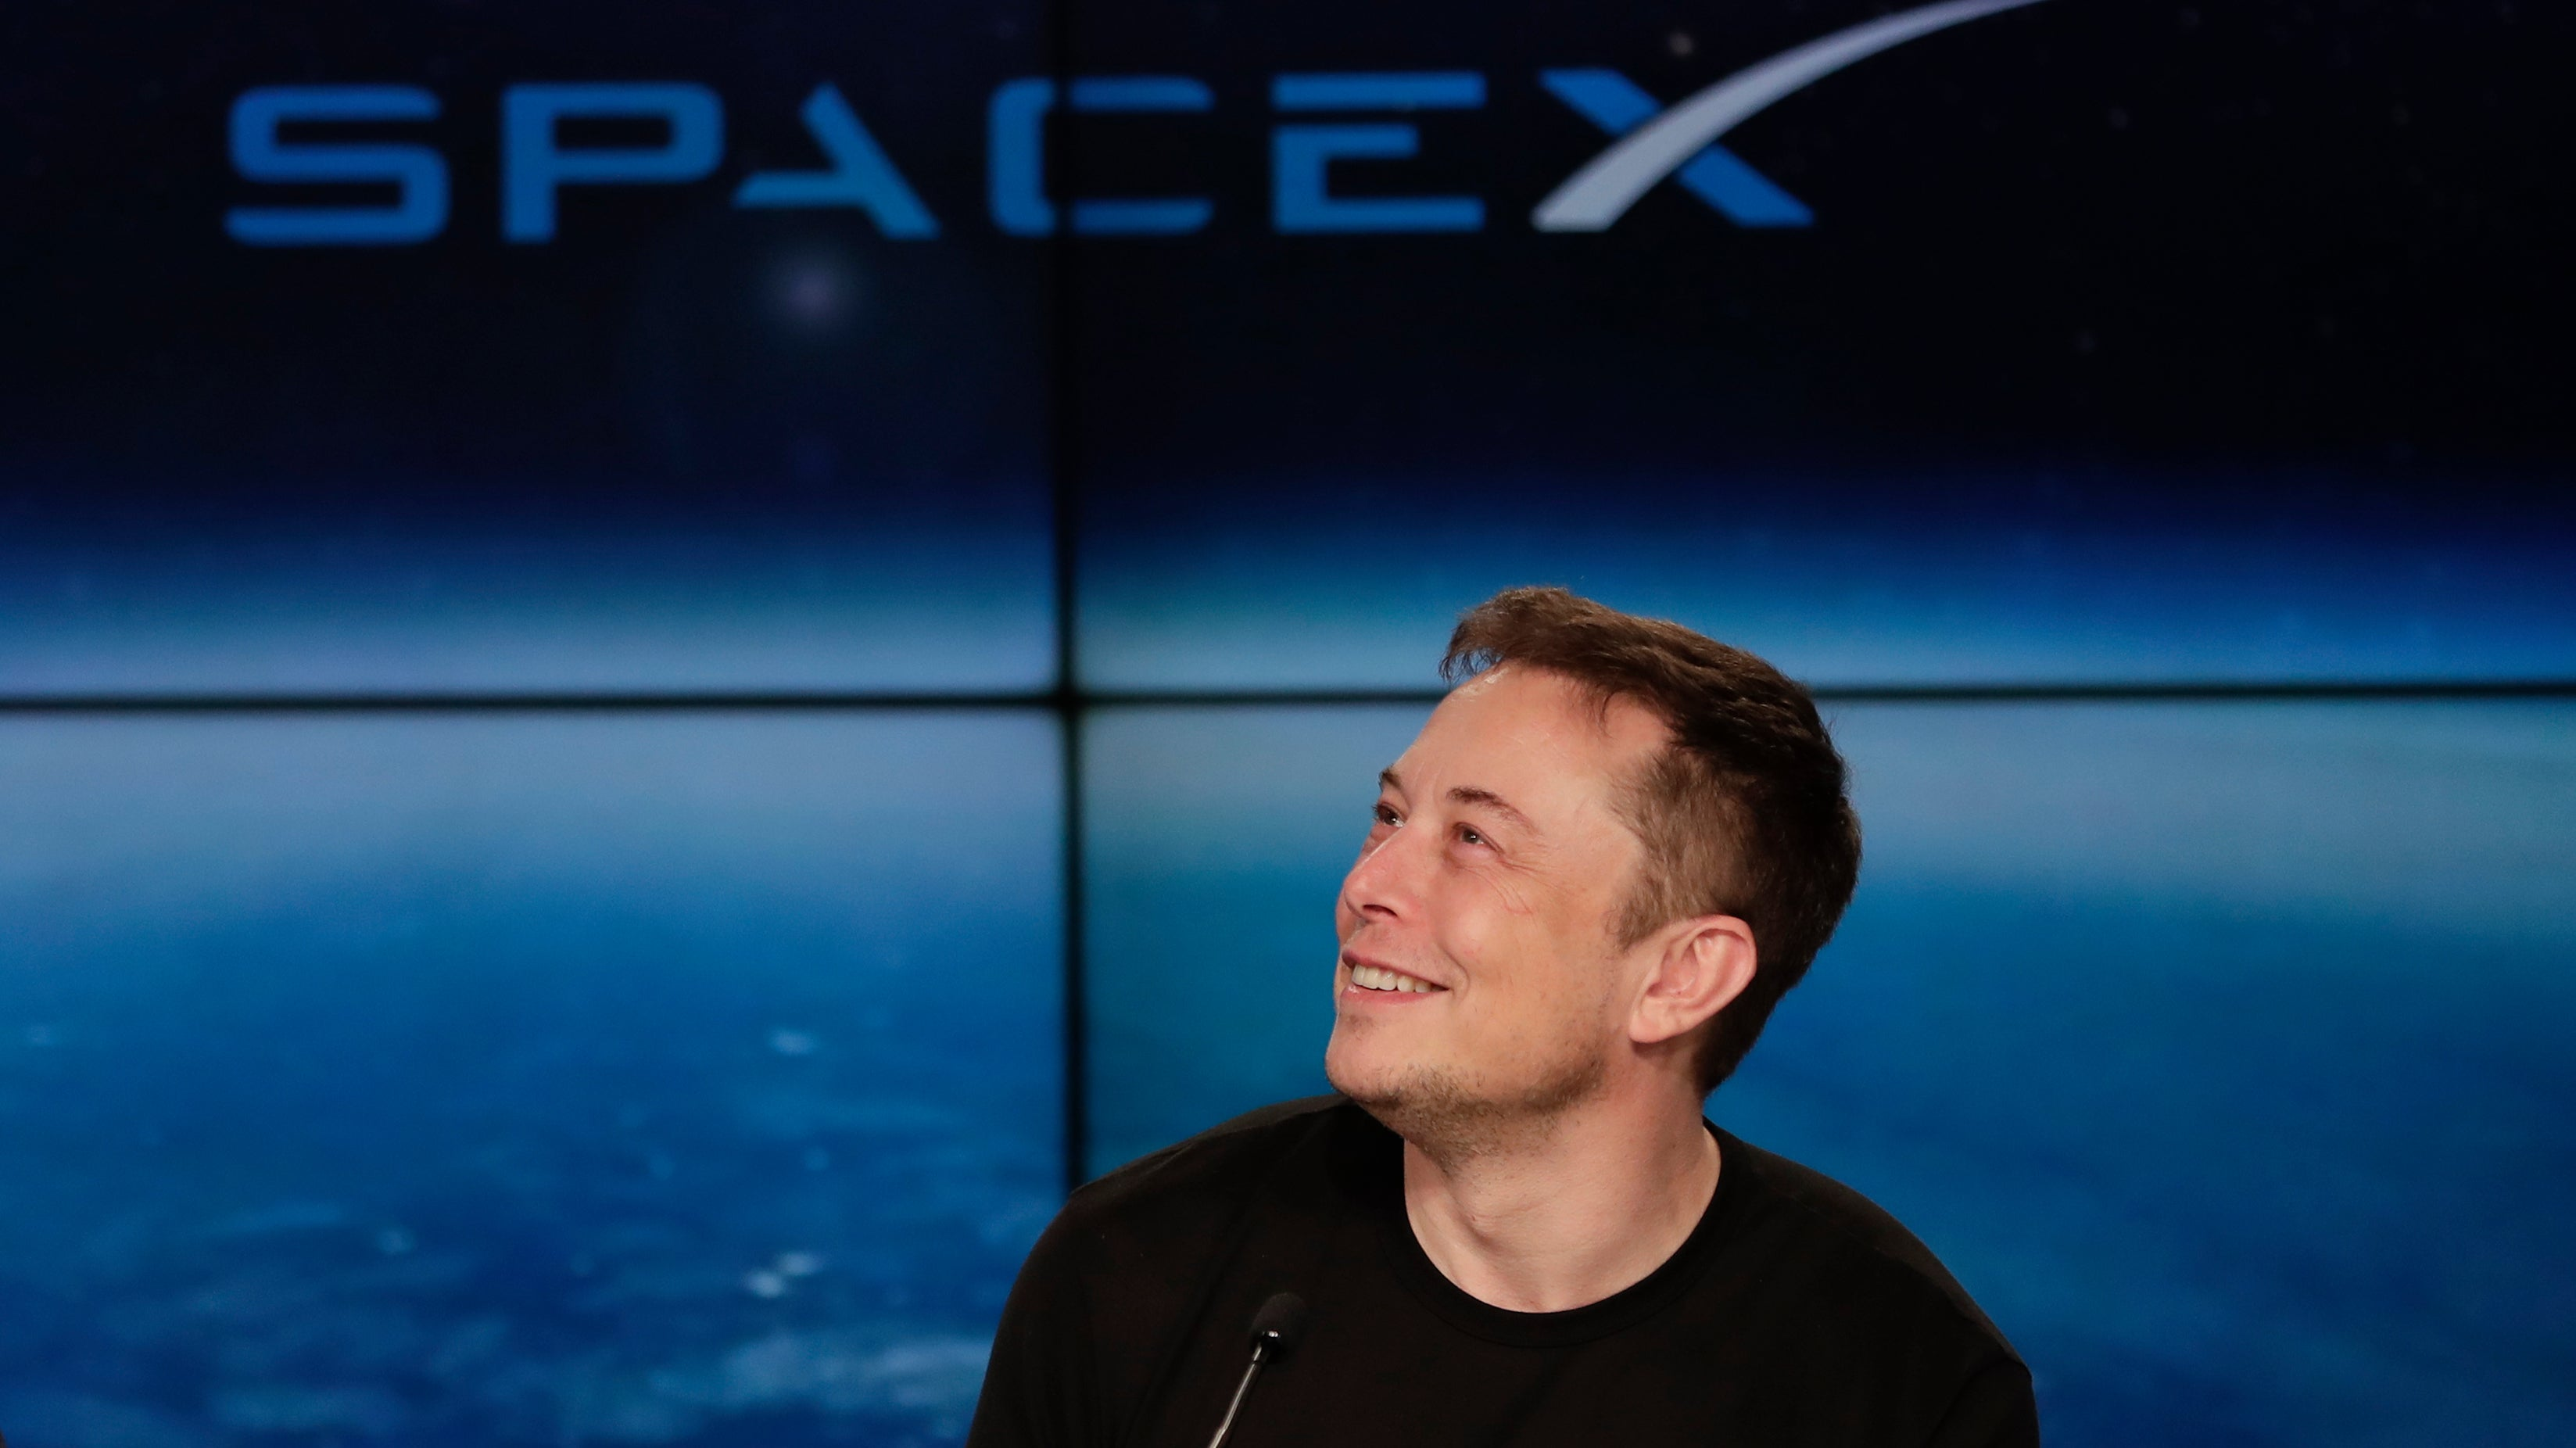 Report: Air Force Not Sure What To Do About Elon Musk Smoking Weed